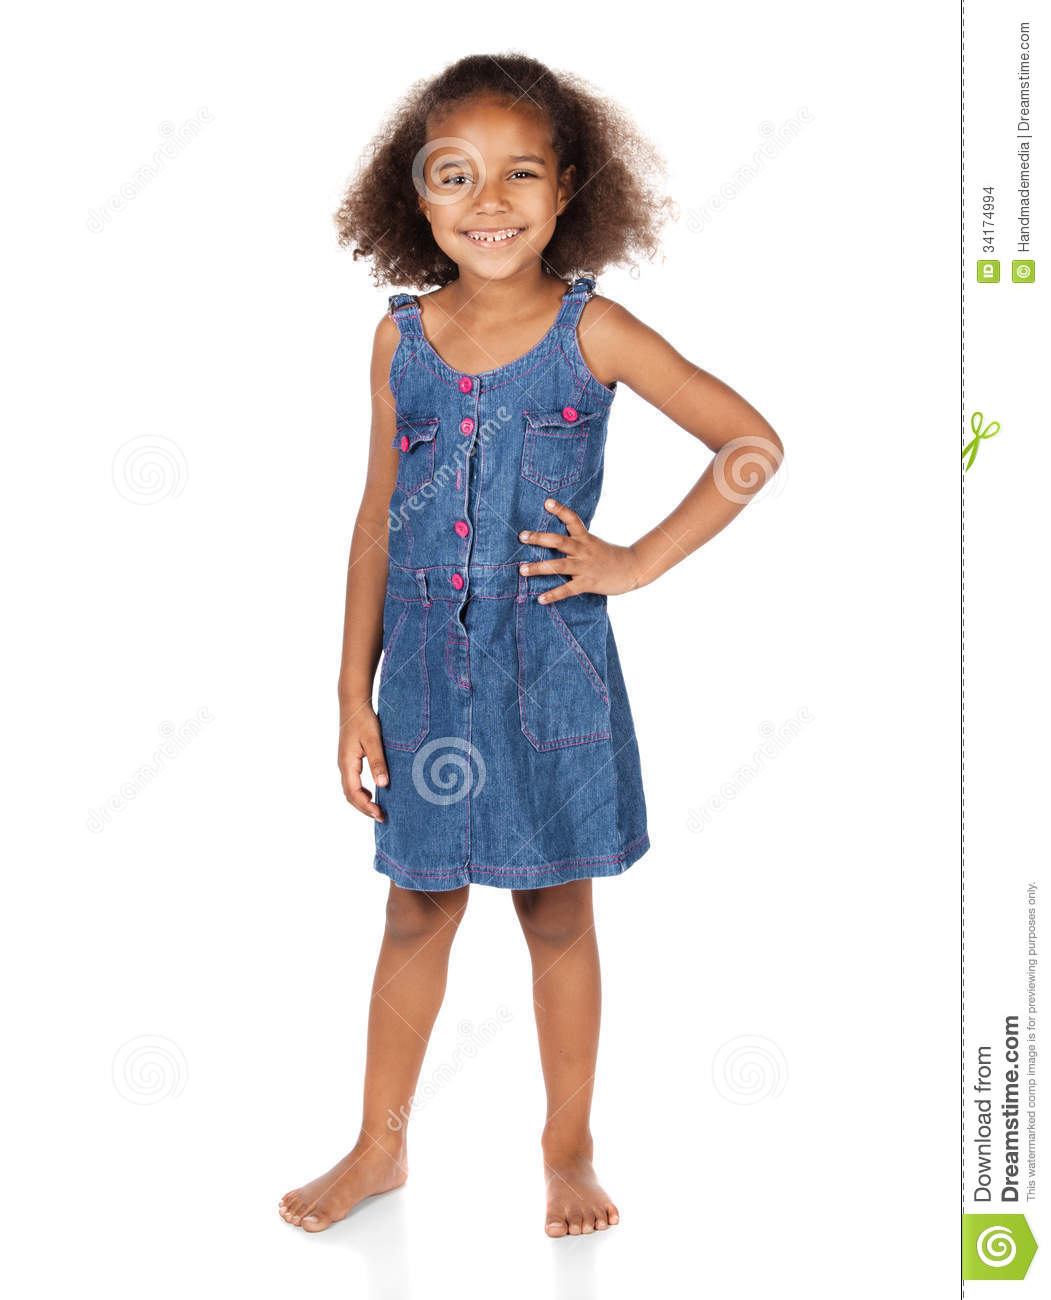 Adorable cute african child with afro hair wearing a denim dress. The ...